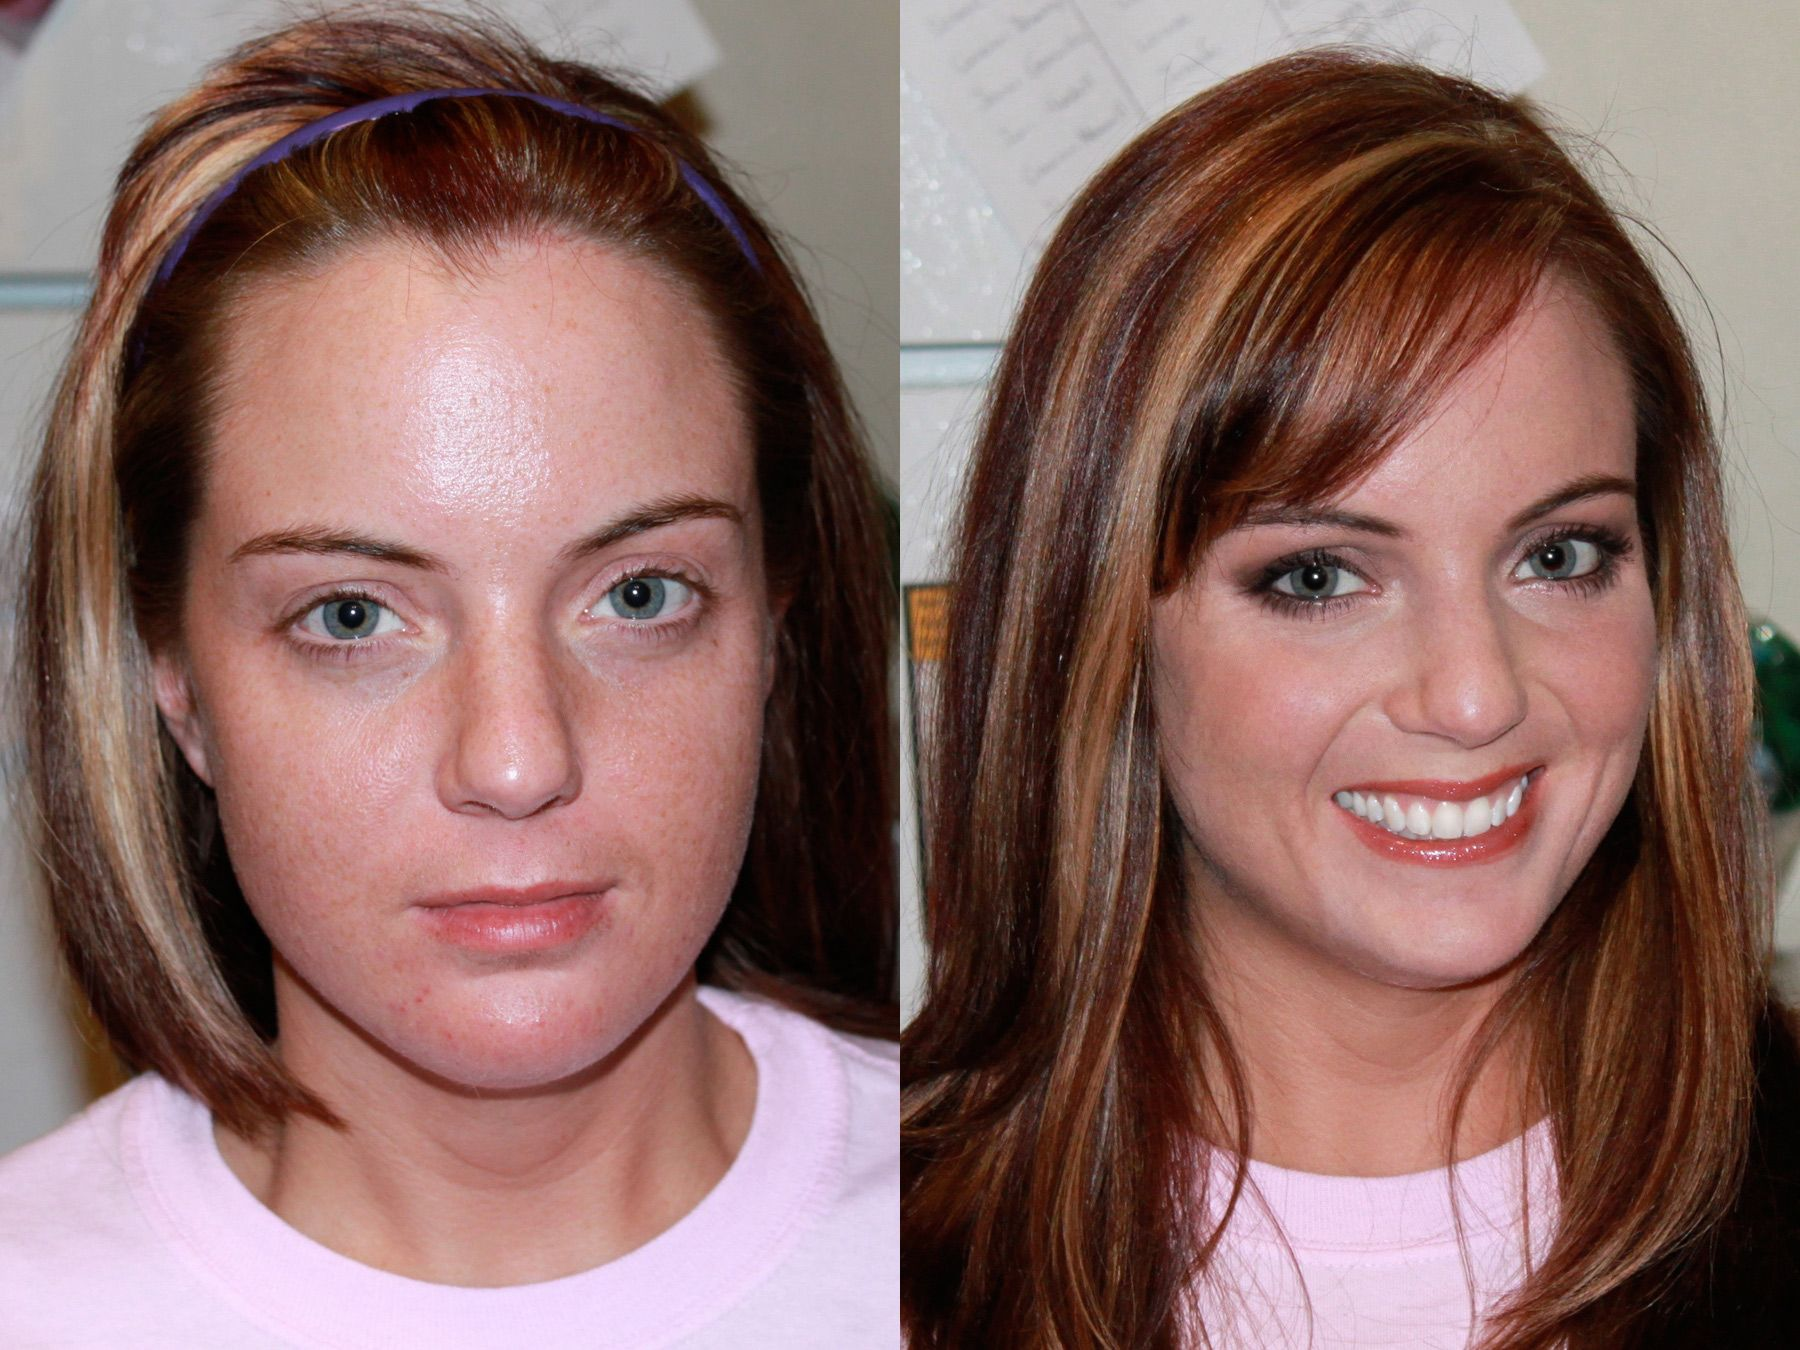 makeup+before+and+after |  airbrush hair design portfolio before